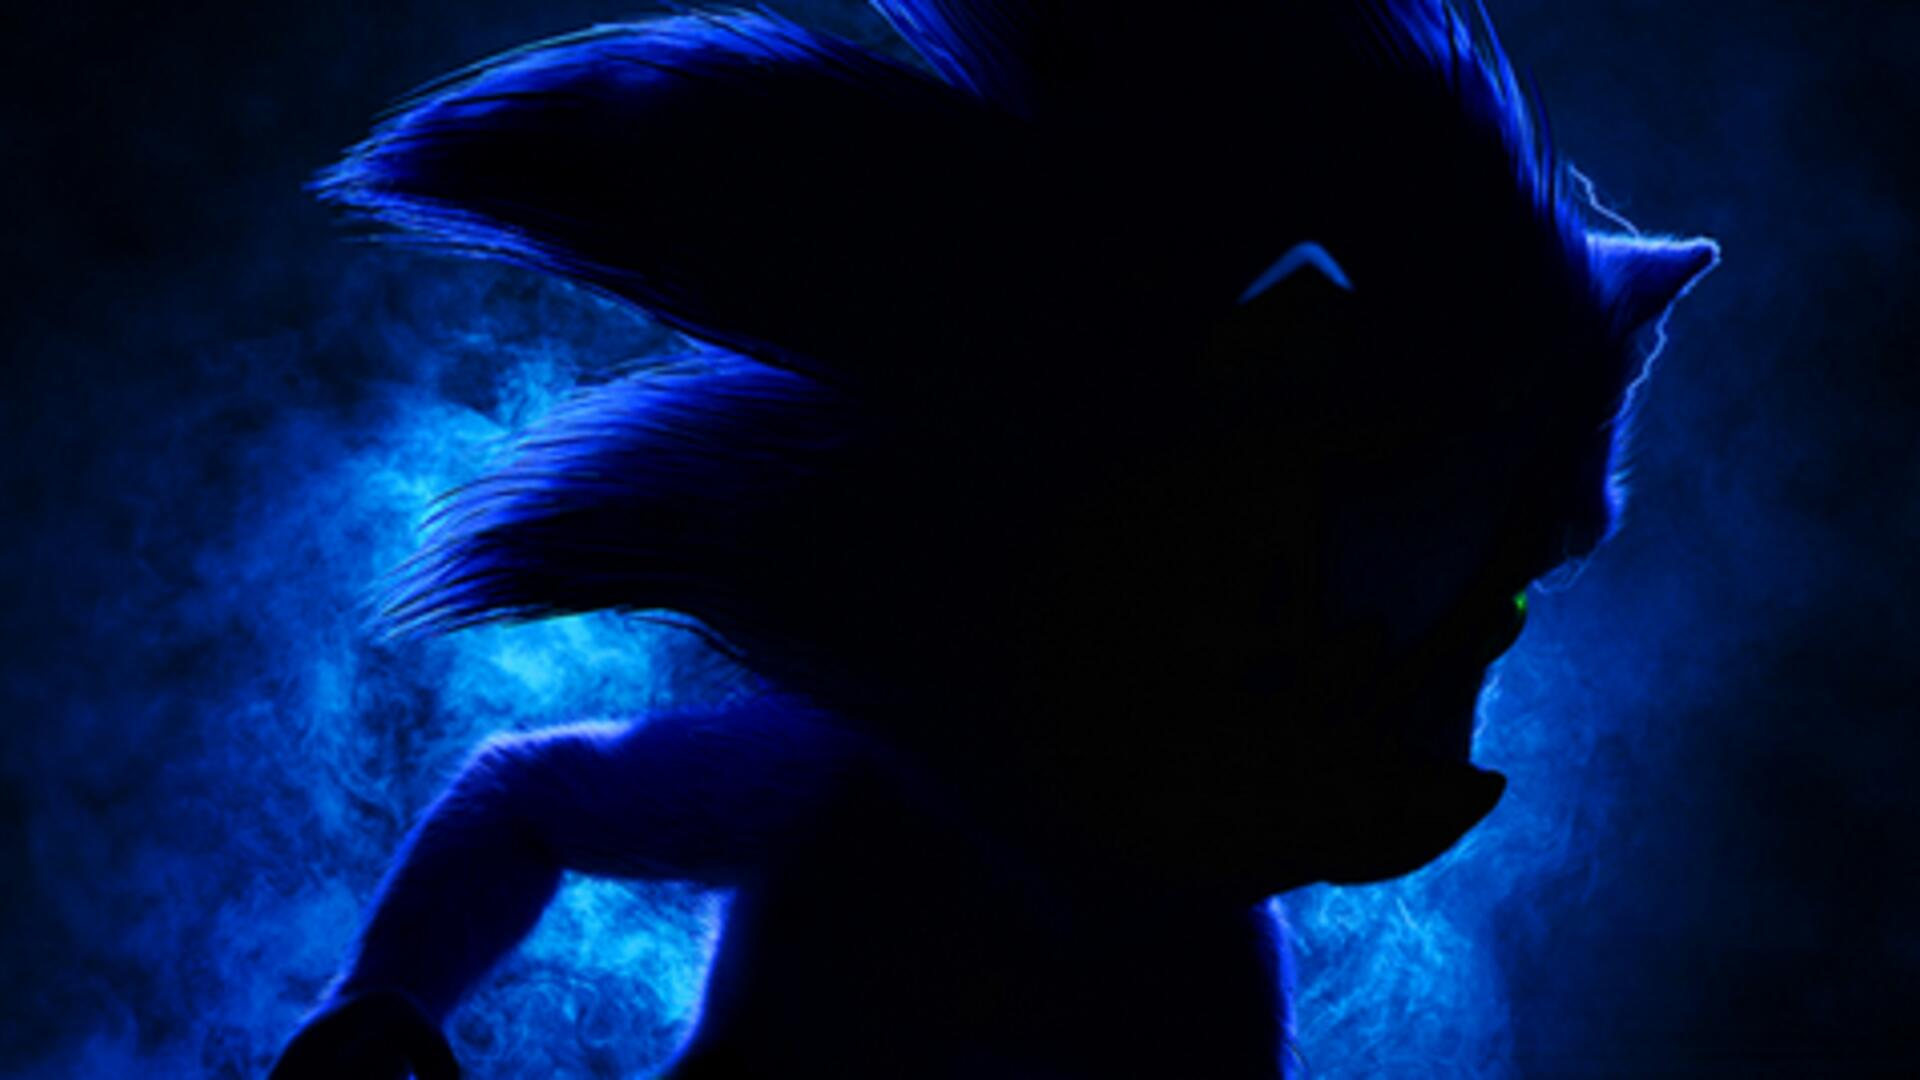 Live-Action Sonic the Hedgehog Looks Every Bit as Weird as Expected